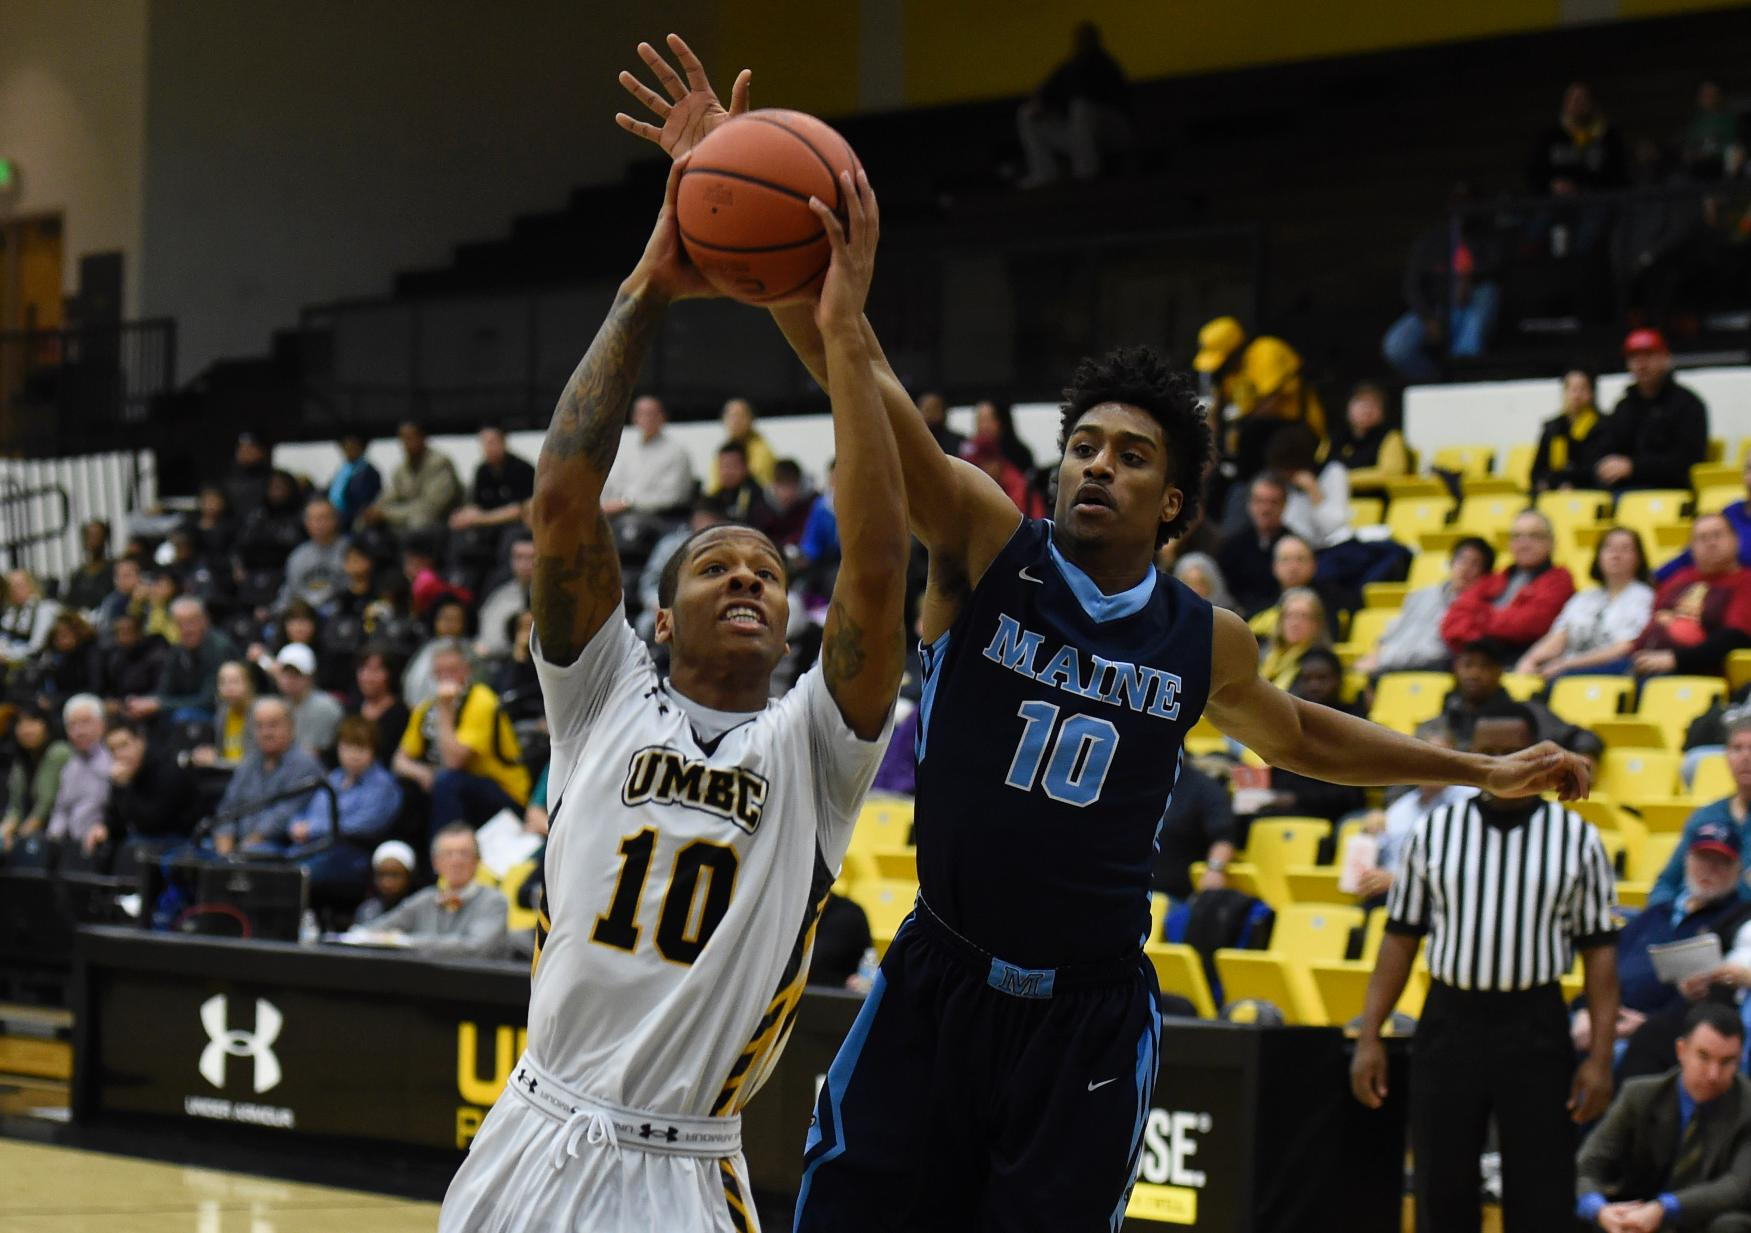 Lyles Leads Potent Retriever Offense To 89-76 Triumph Over Maine